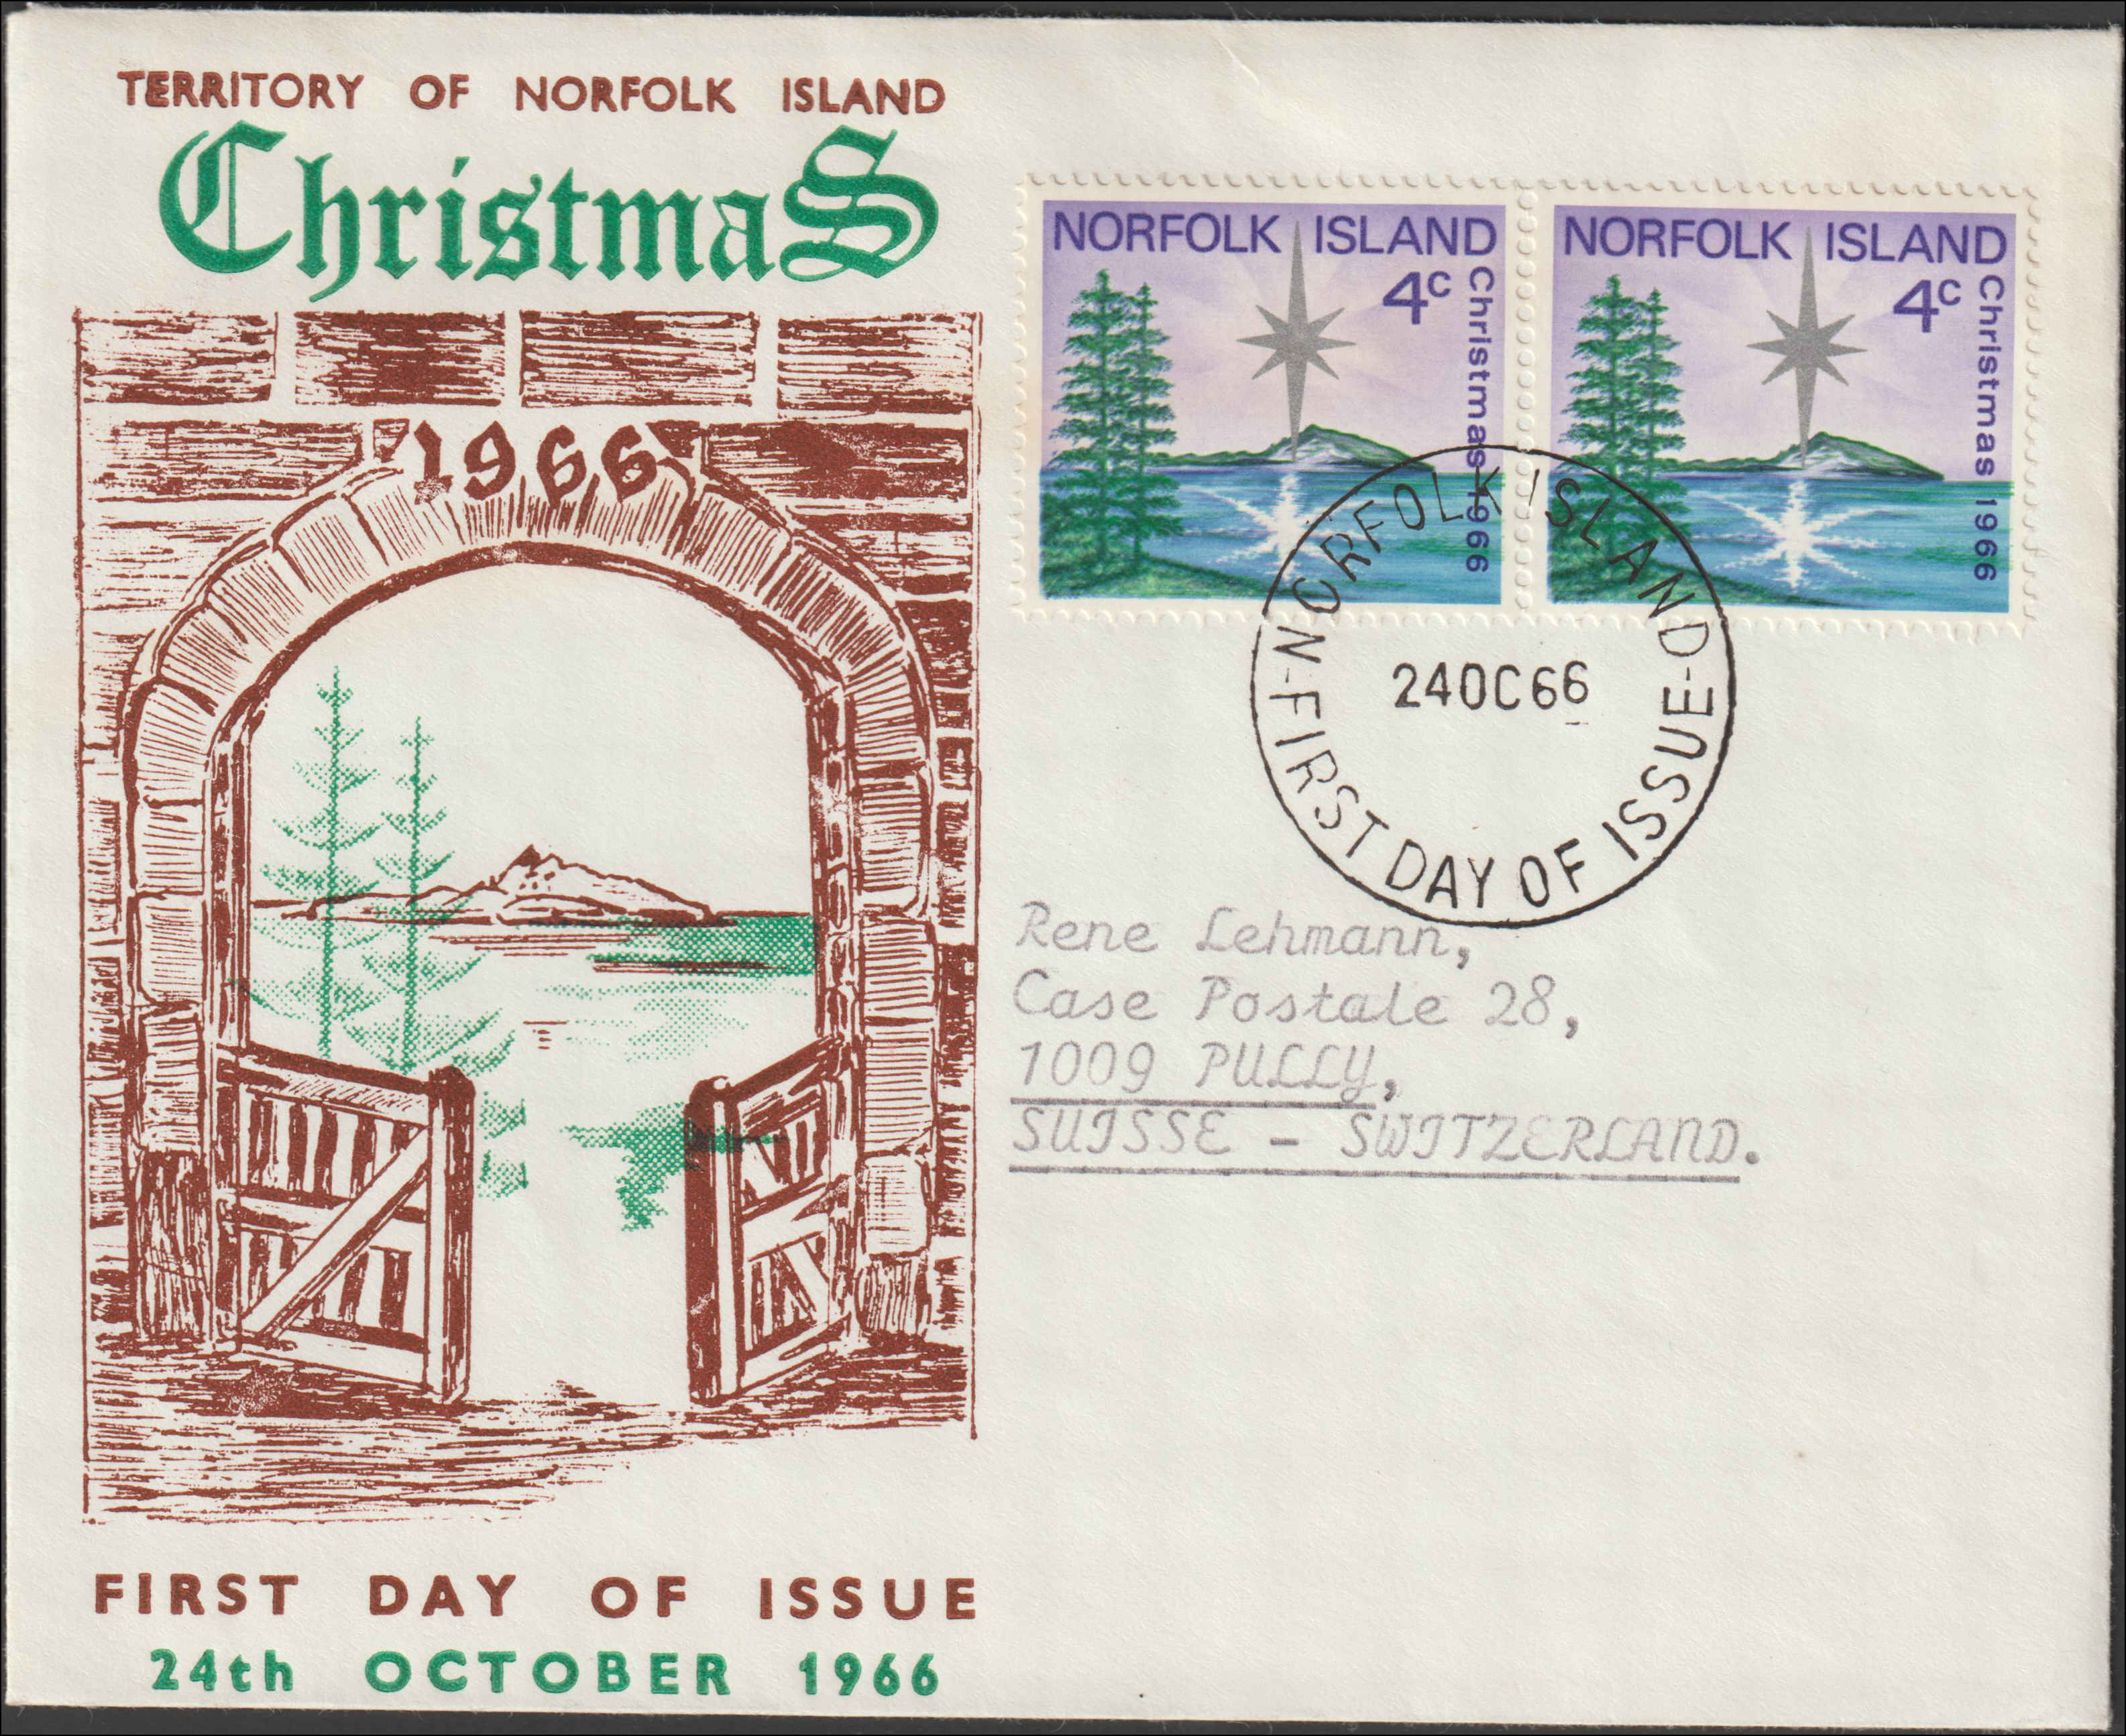 Norfolk Islands, Worldwide First Day Cover Entered 2/28/2019. Price: $1.75. Item #D71290